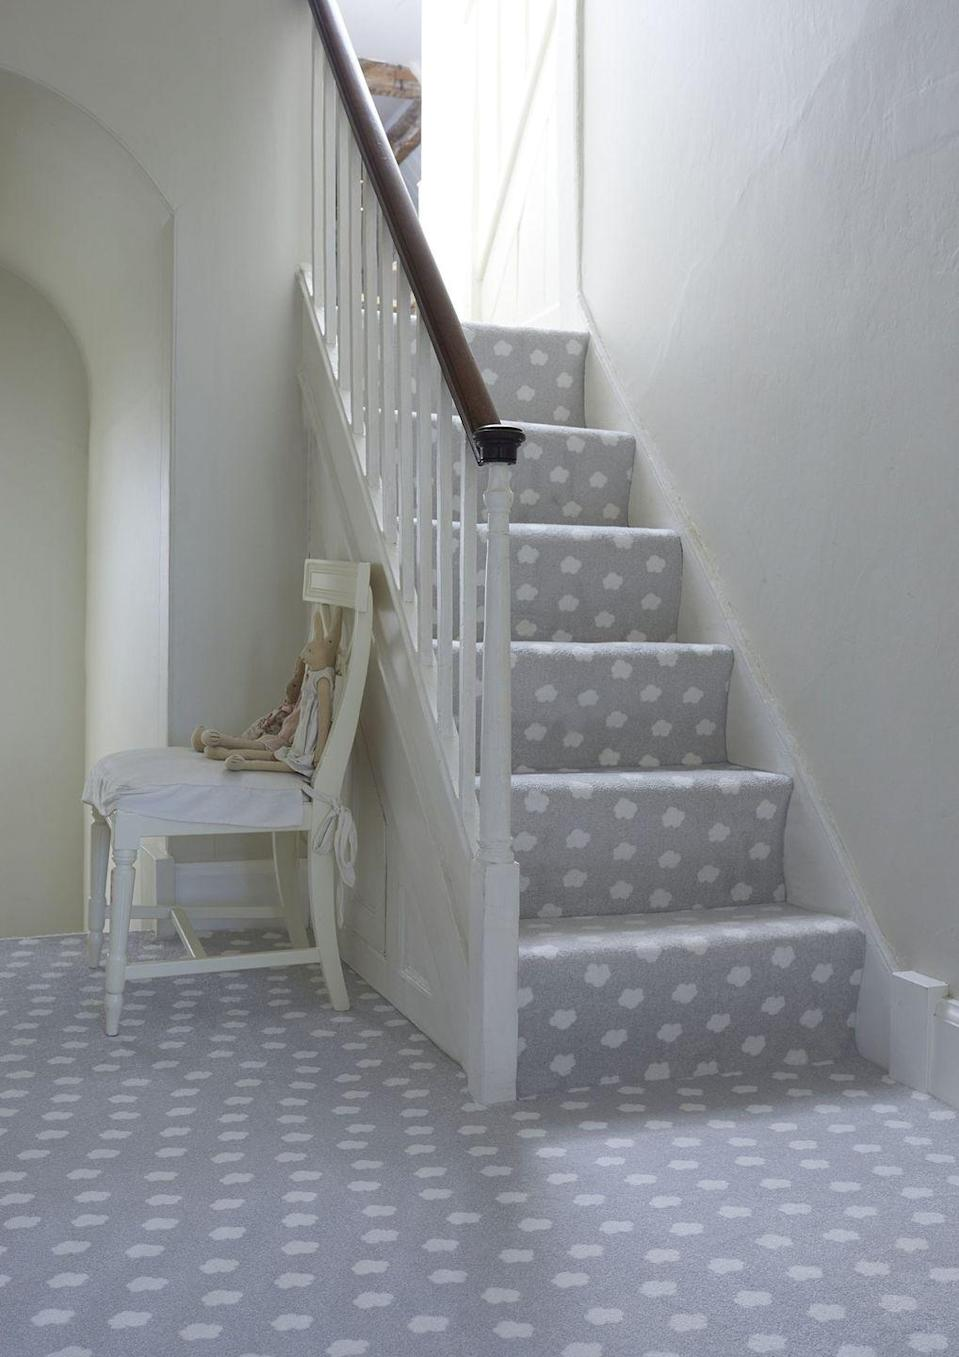 """<p>Shake up your interiors by turning your staircase into something fun for the kids — especially if it leads to one of their bedrooms. We love this classic grey stair carpet from Carpetright, which is adorned with white clouds. </p><p>Pictured: <a href=""""https://www.carpetright.co.uk/carpets/the-nursery-collection/"""" rel=""""nofollow noopener"""" target=""""_blank"""" data-ylk=""""slk:'The Nursery Collection Patterned Carpet in Daydream Silver' by Carpetright"""" class=""""link rapid-noclick-resp"""">'The Nursery Collection Patterned Carpet in Daydream Silver' by Carpetright</a>. </p>"""